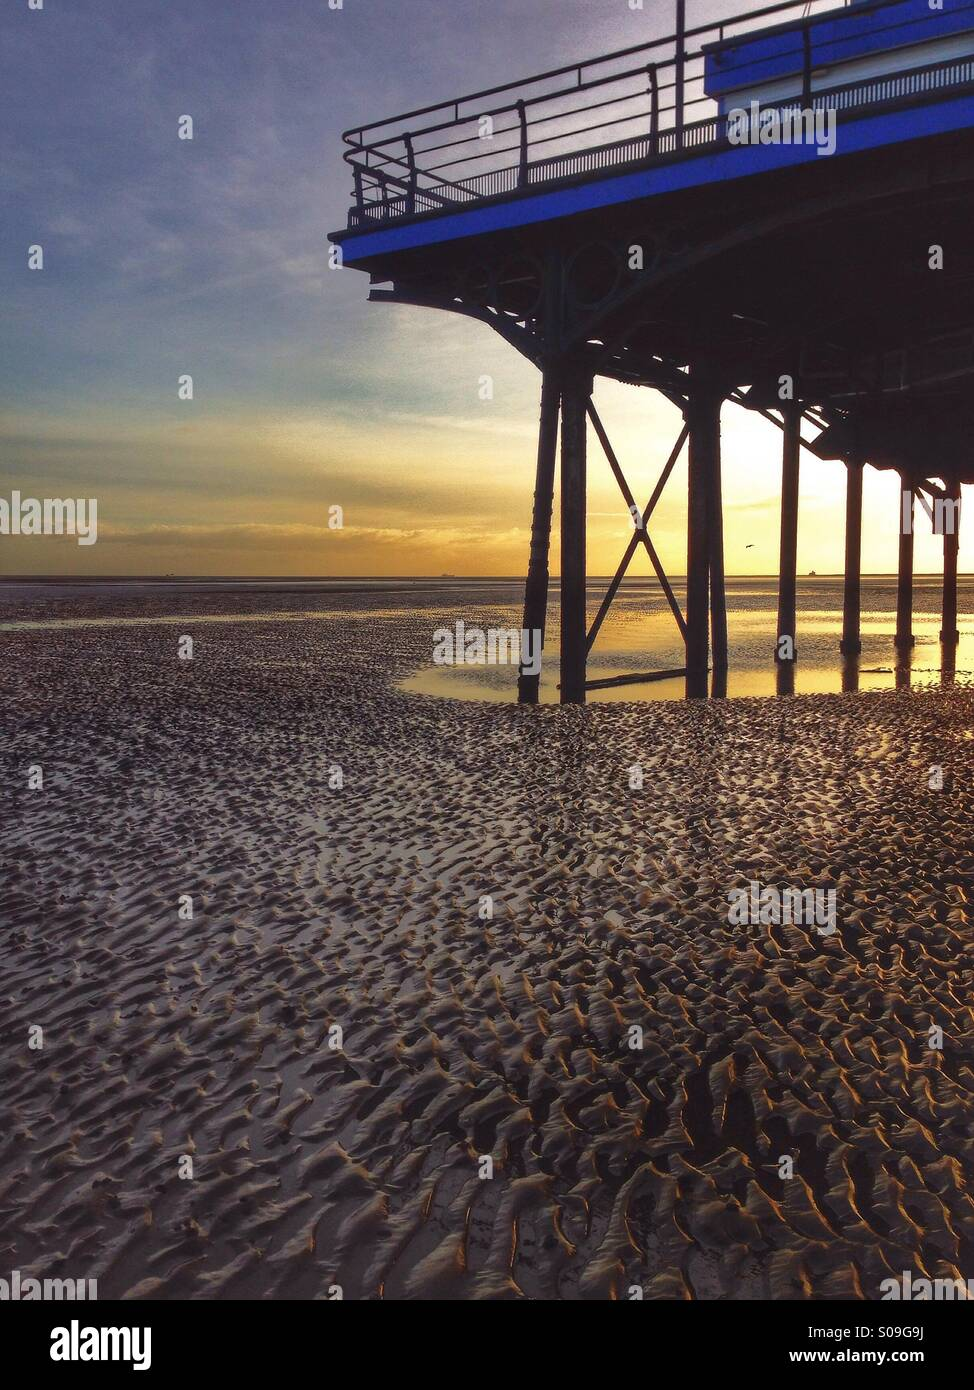 Traditional pier seen in detail at sunrise. - Stock Image